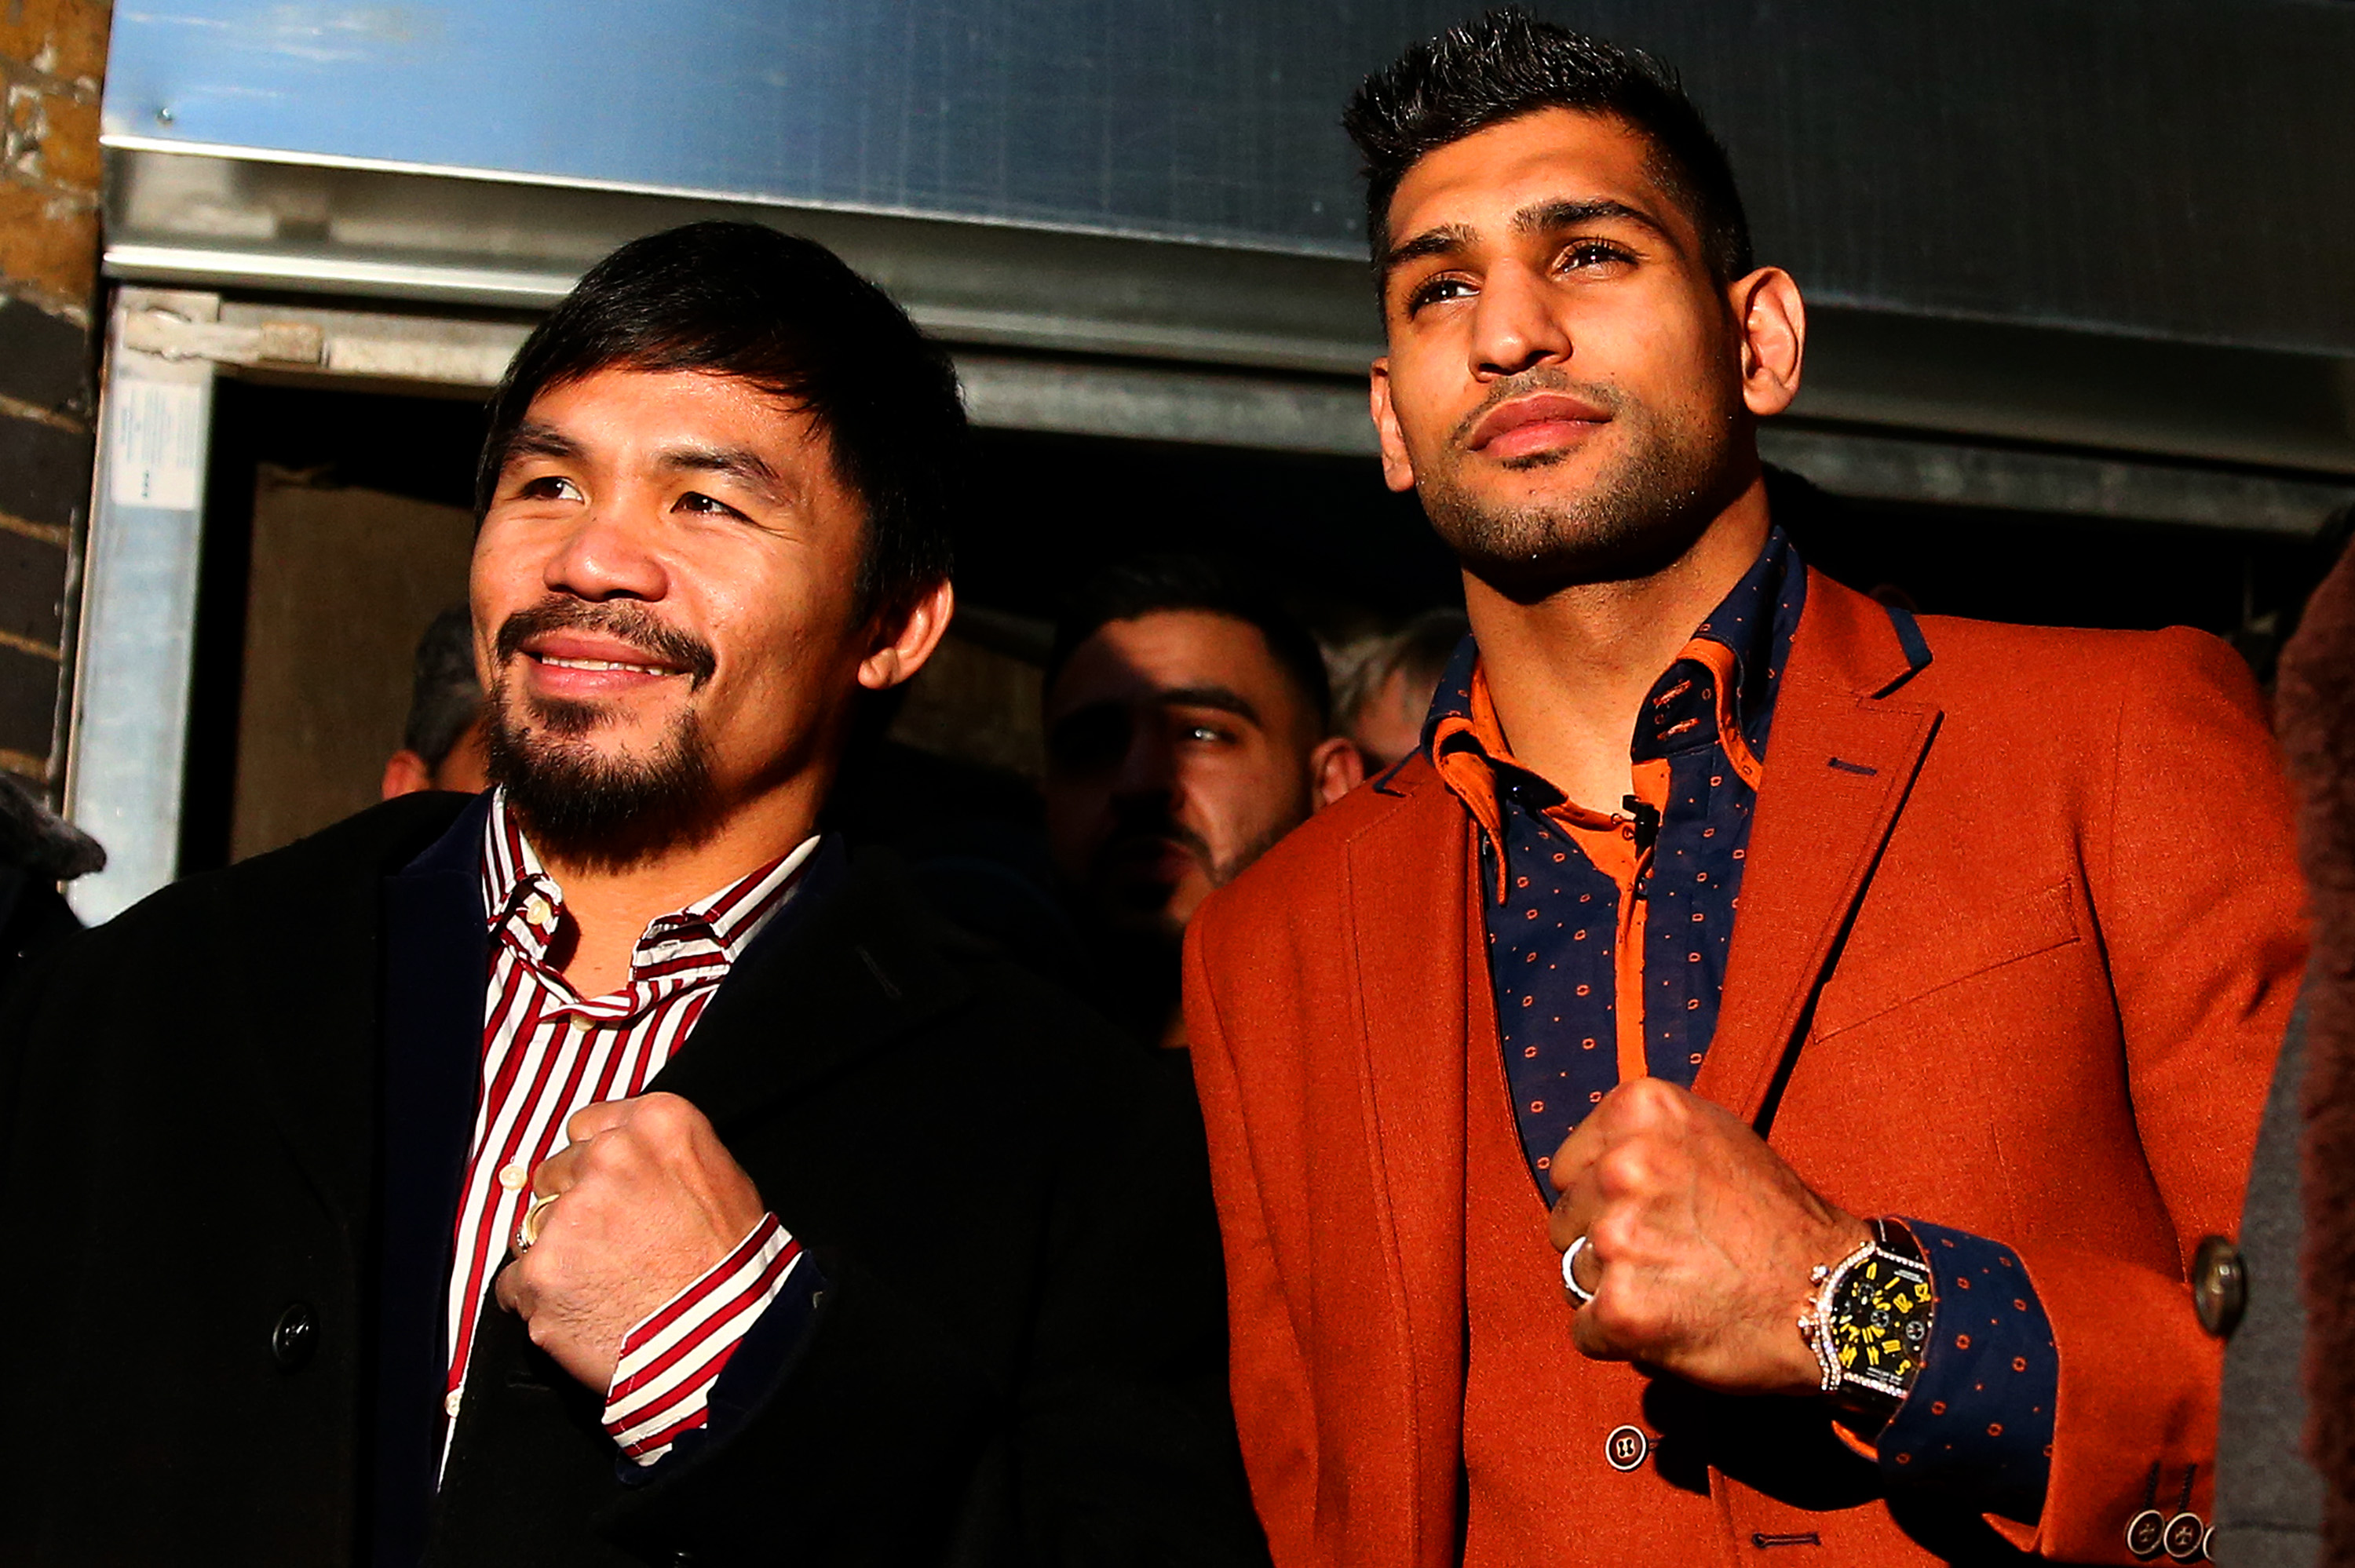 Manny Pacquiao and Amir Khan.  (Photo by Dan Istitene/Getty Images)